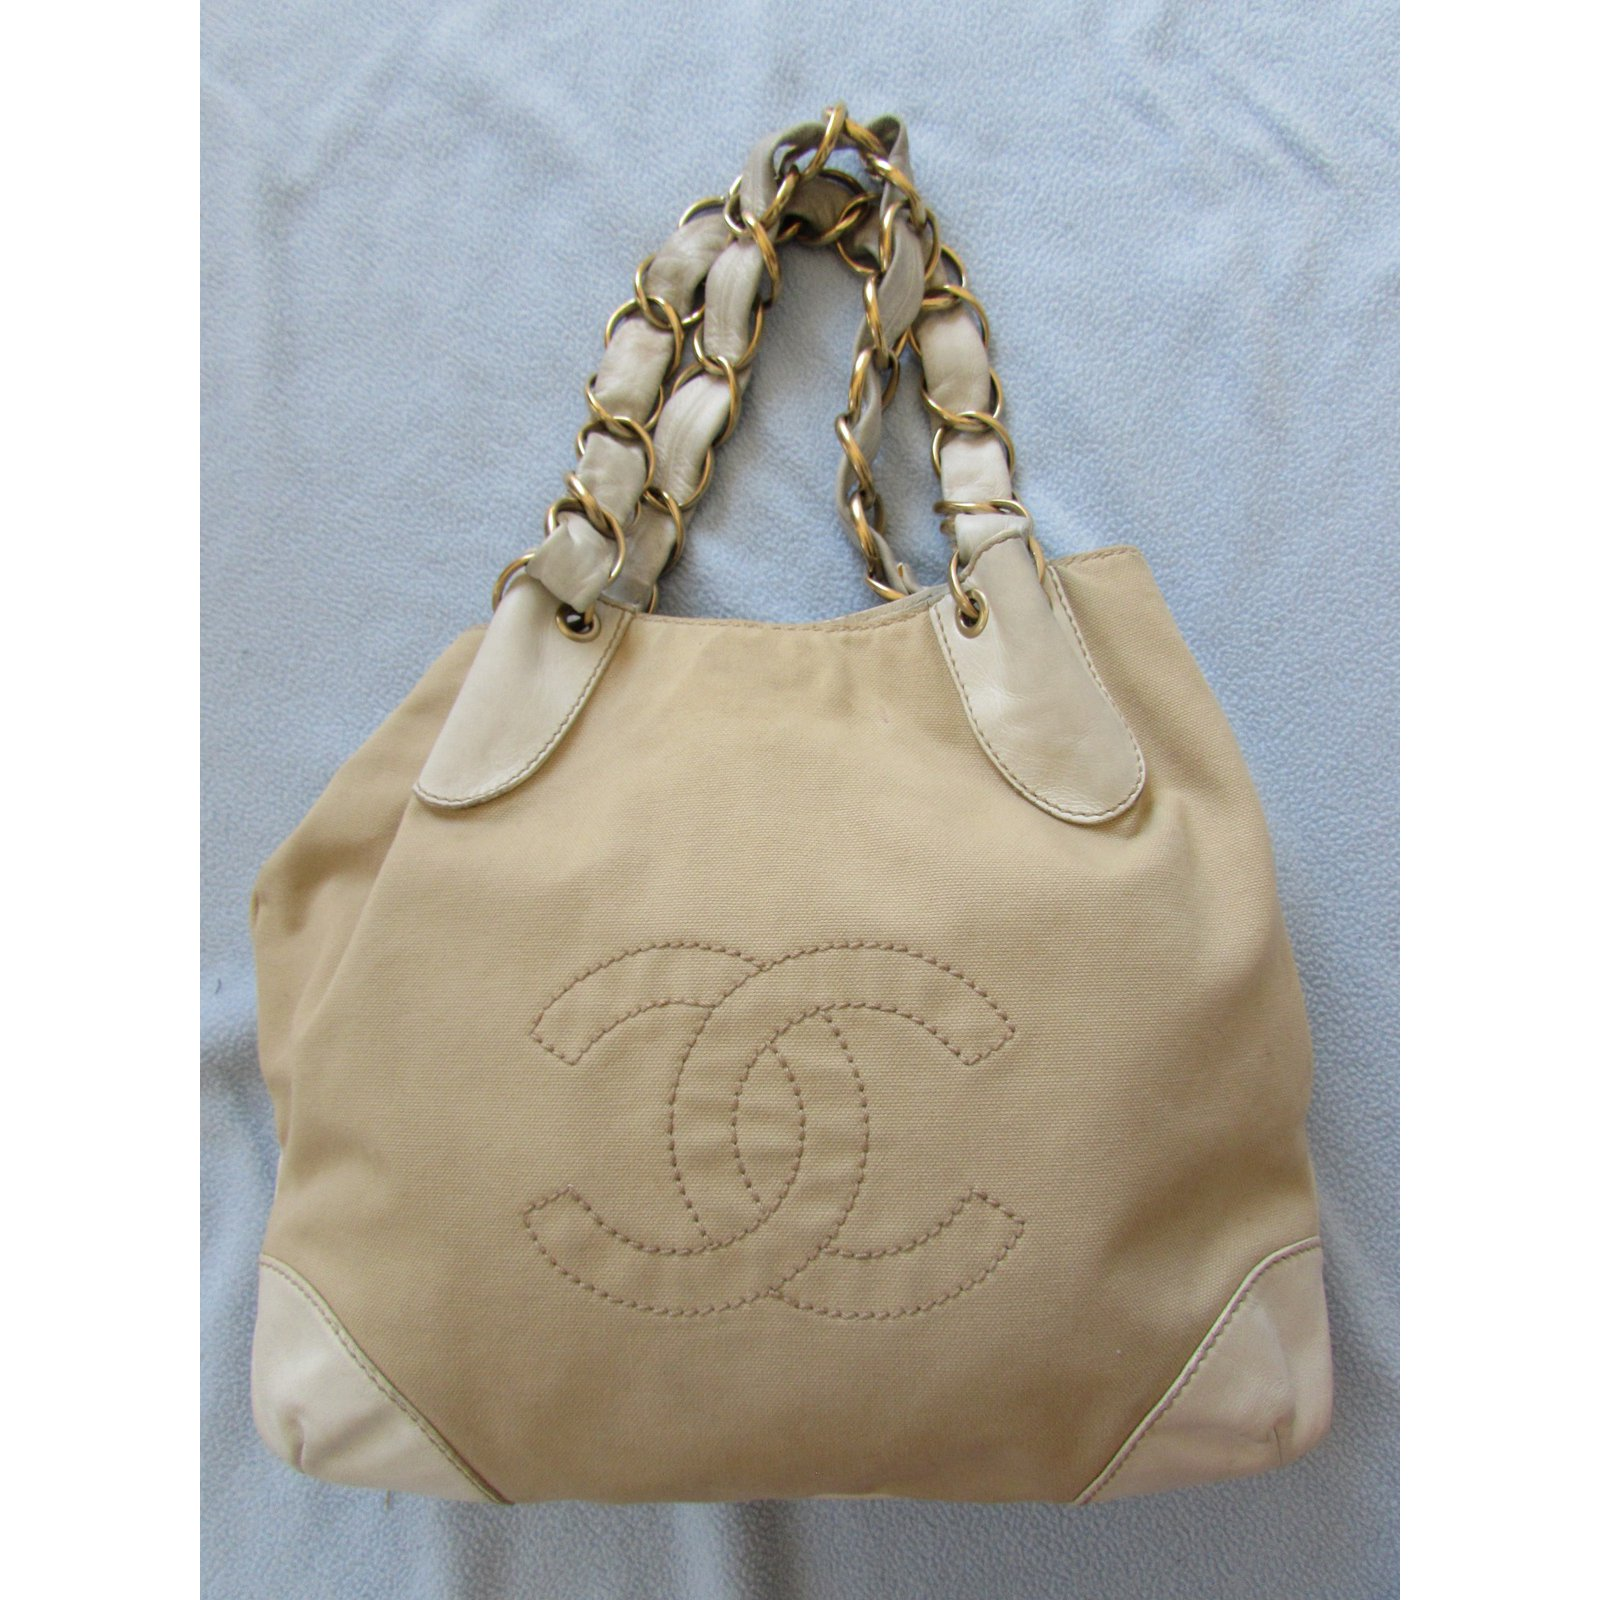 4ea23ac2be62 Sacs à main Chanel Sacs à main Cuir